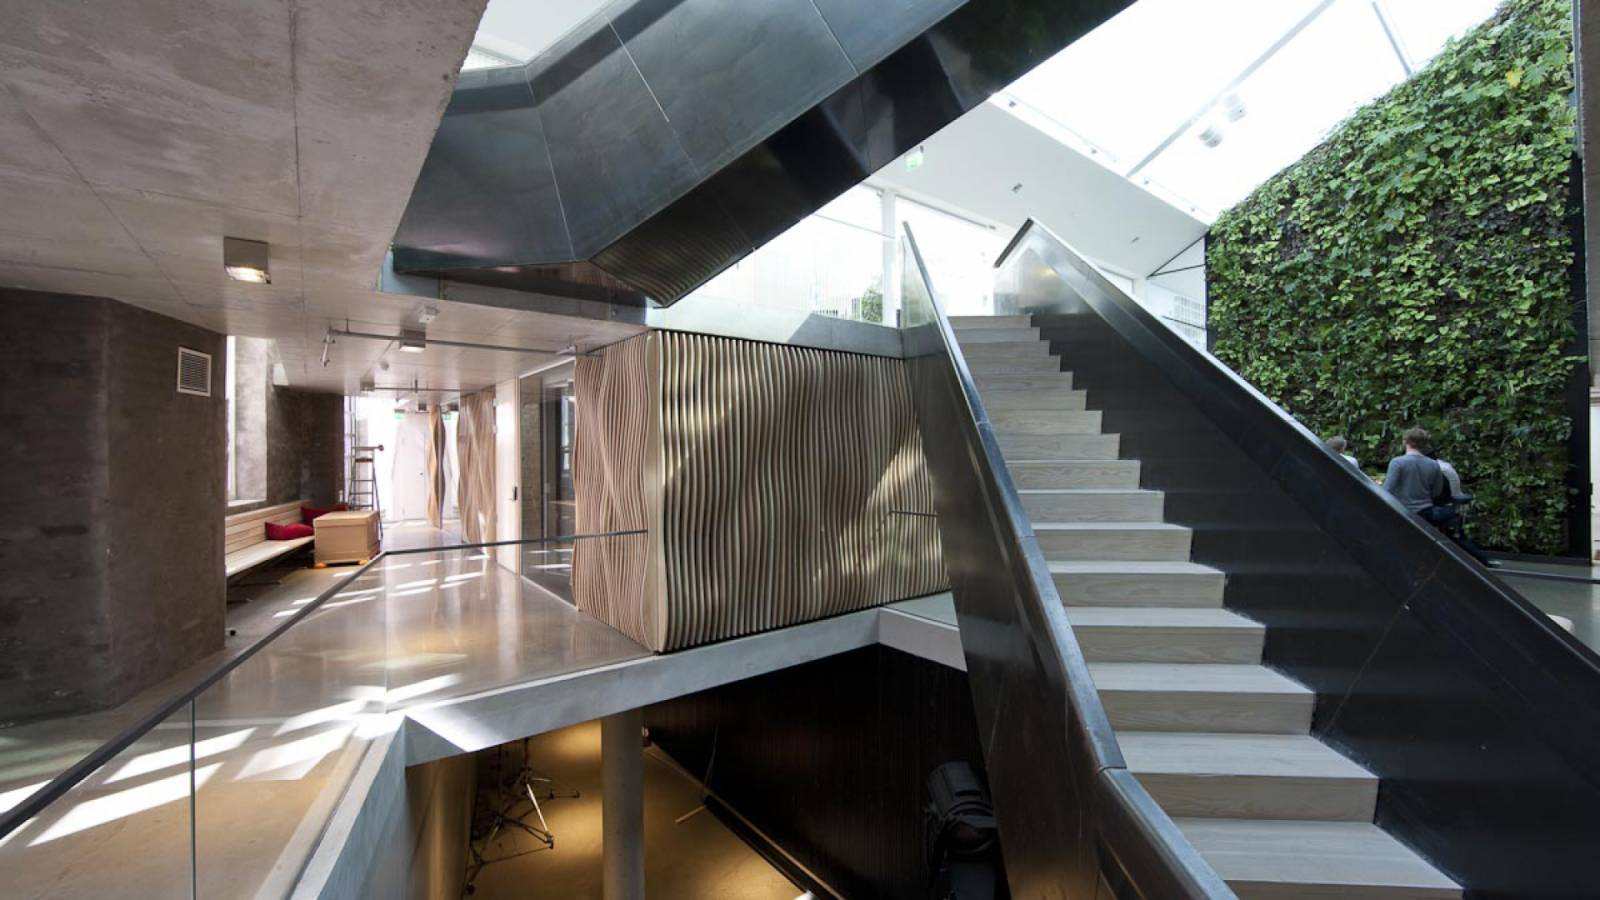 ENTRANCE LEVEL - Signal Mediahus - SPOL Architects